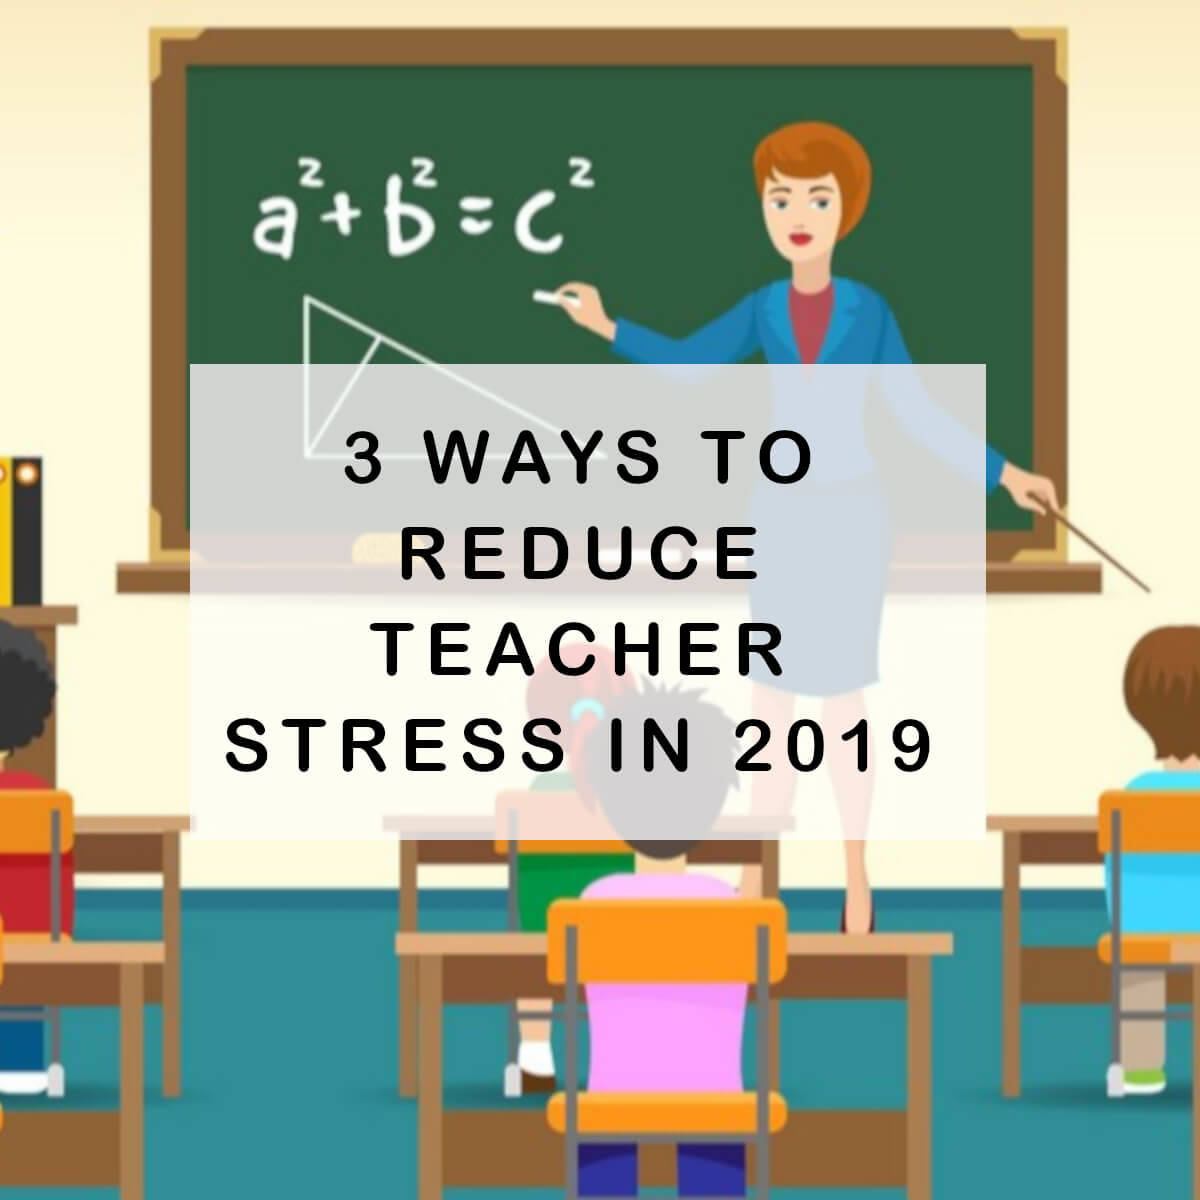 3 Ways To Reduce Teacher Stress In 2019